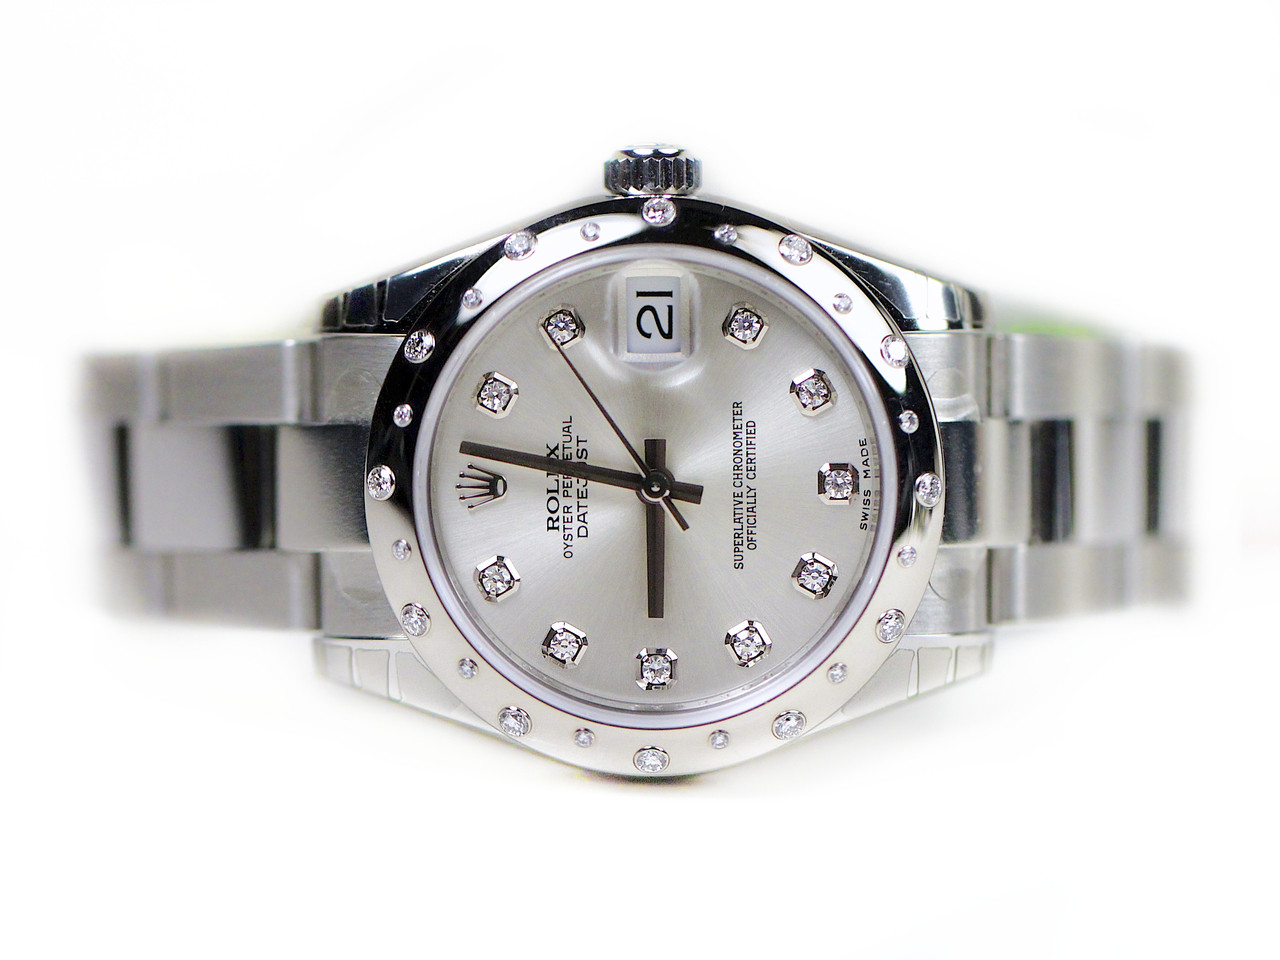 Rolex watch datejust lady 31 steel diamonds 178344 from legend of time chicago watch center for Rolex date just 31